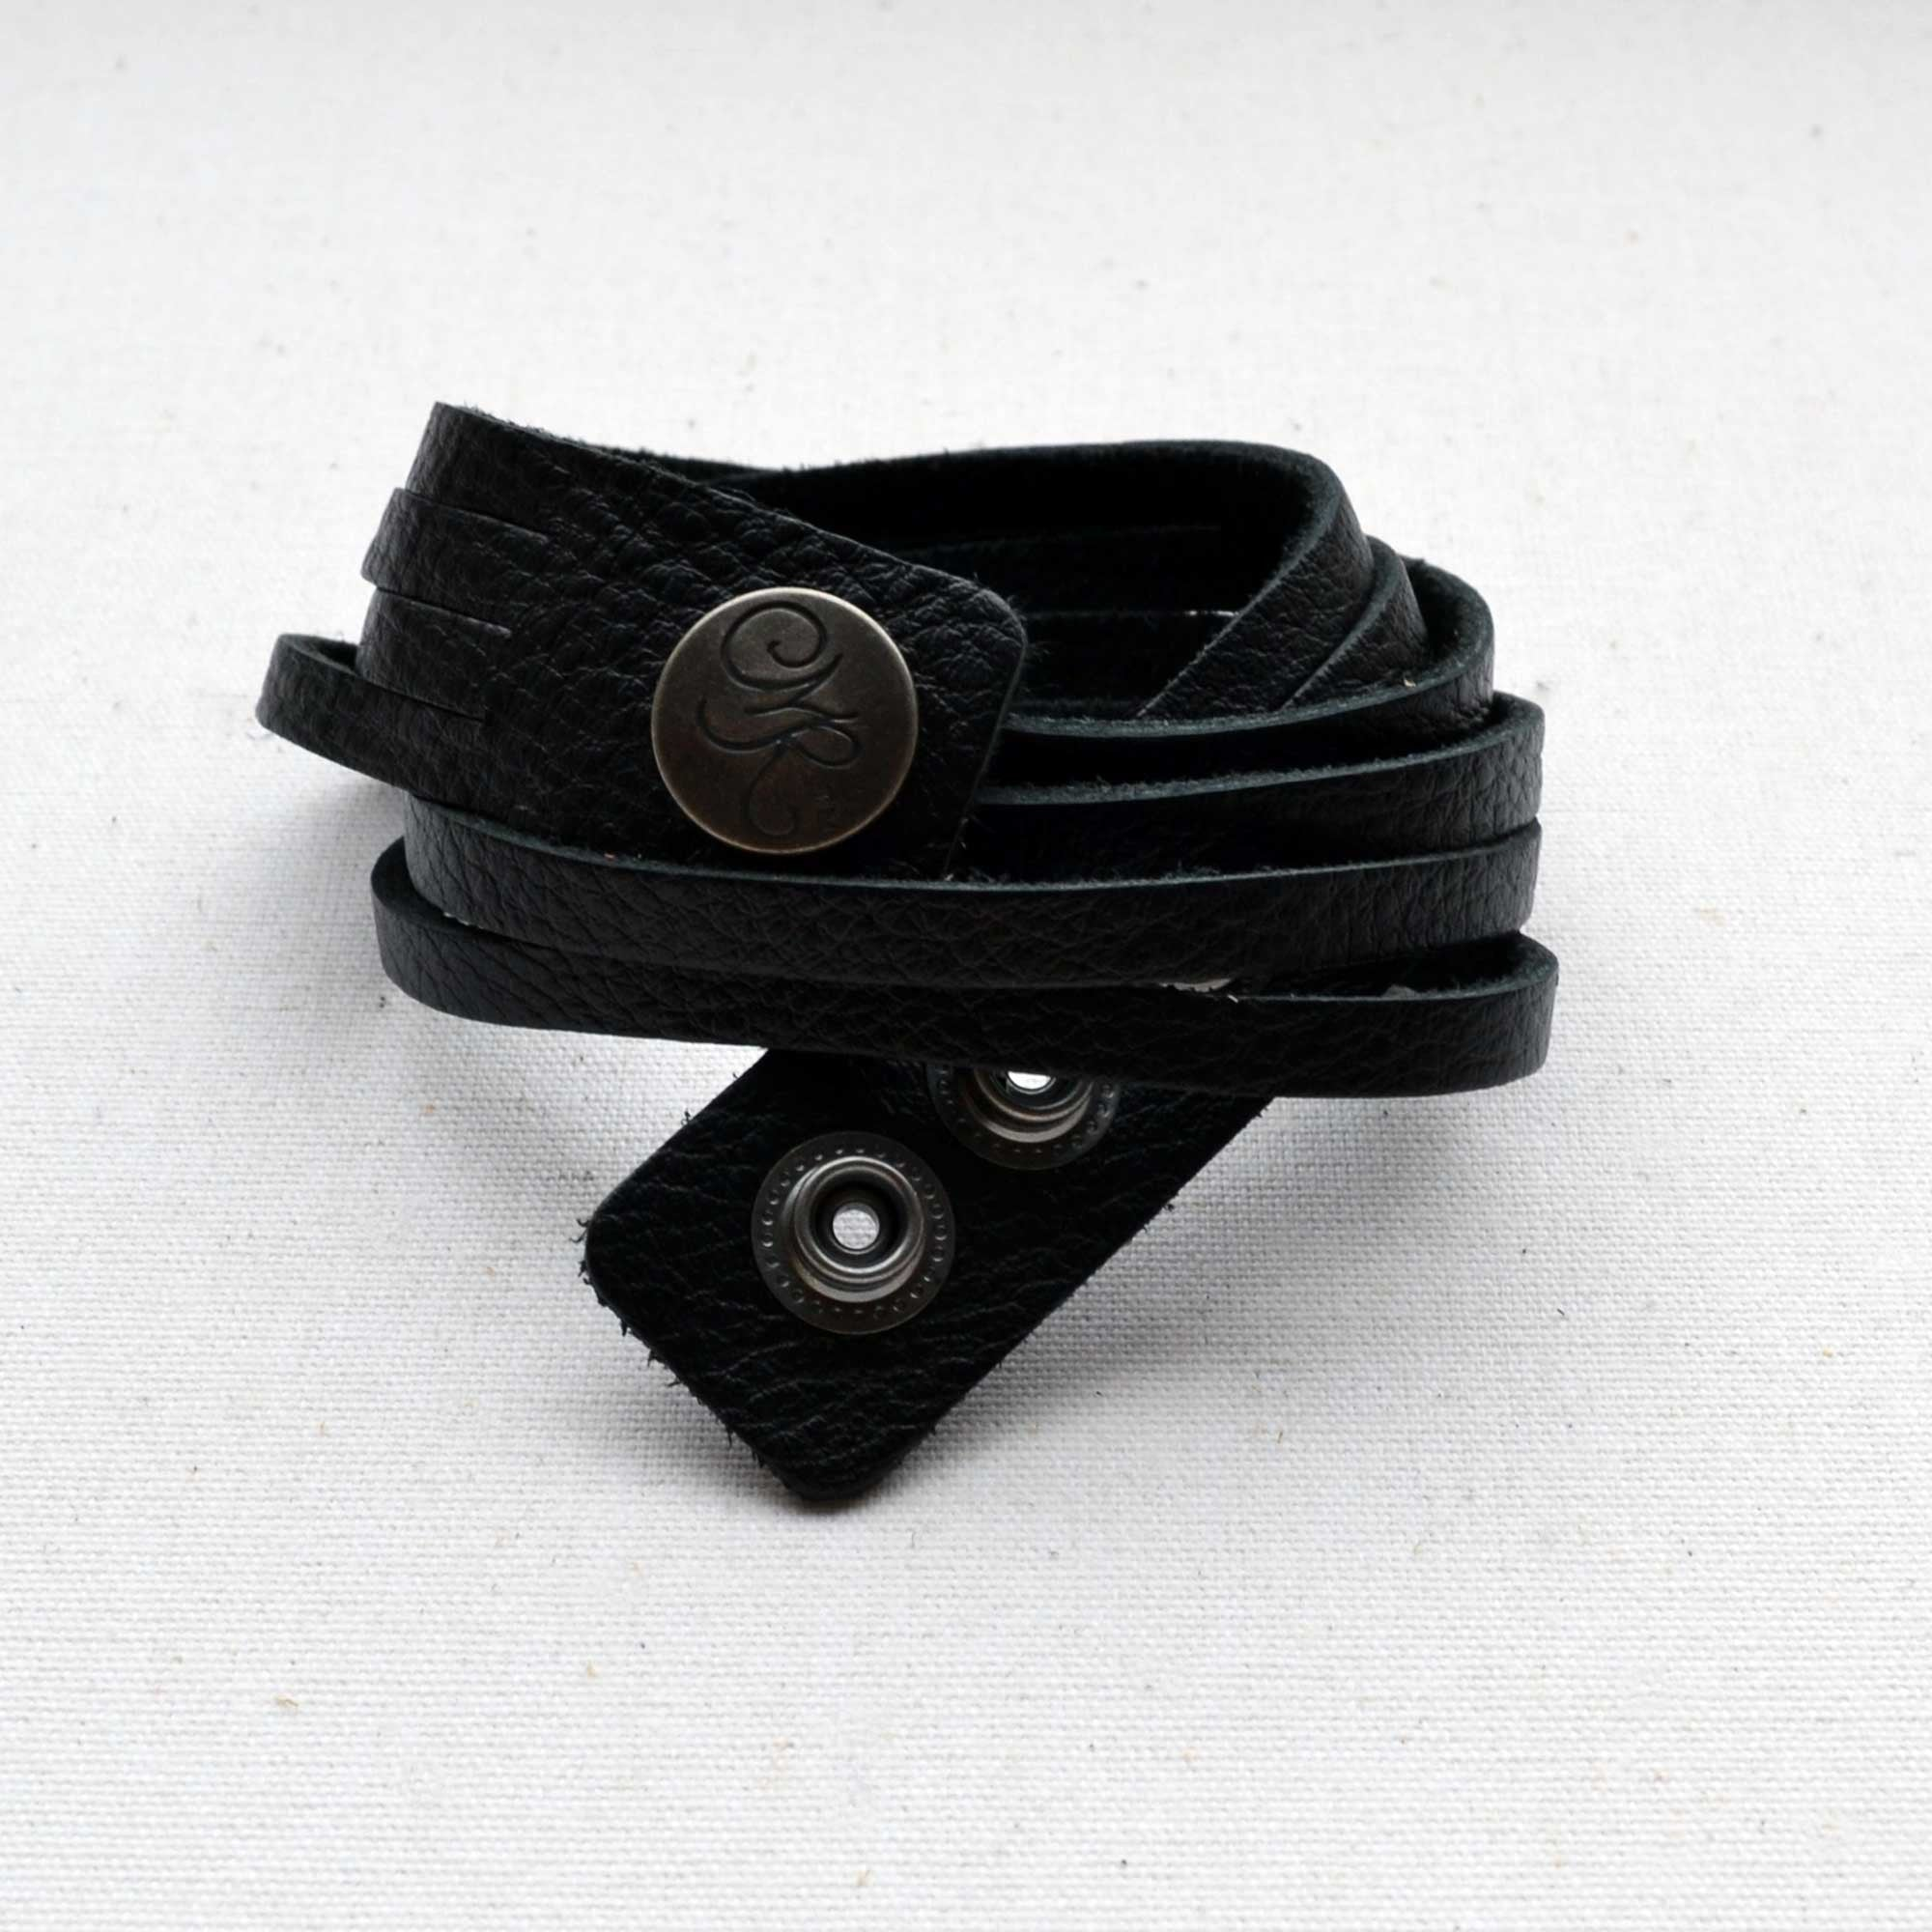 Leather, Handmade Wrap Around Unisex Cuffs